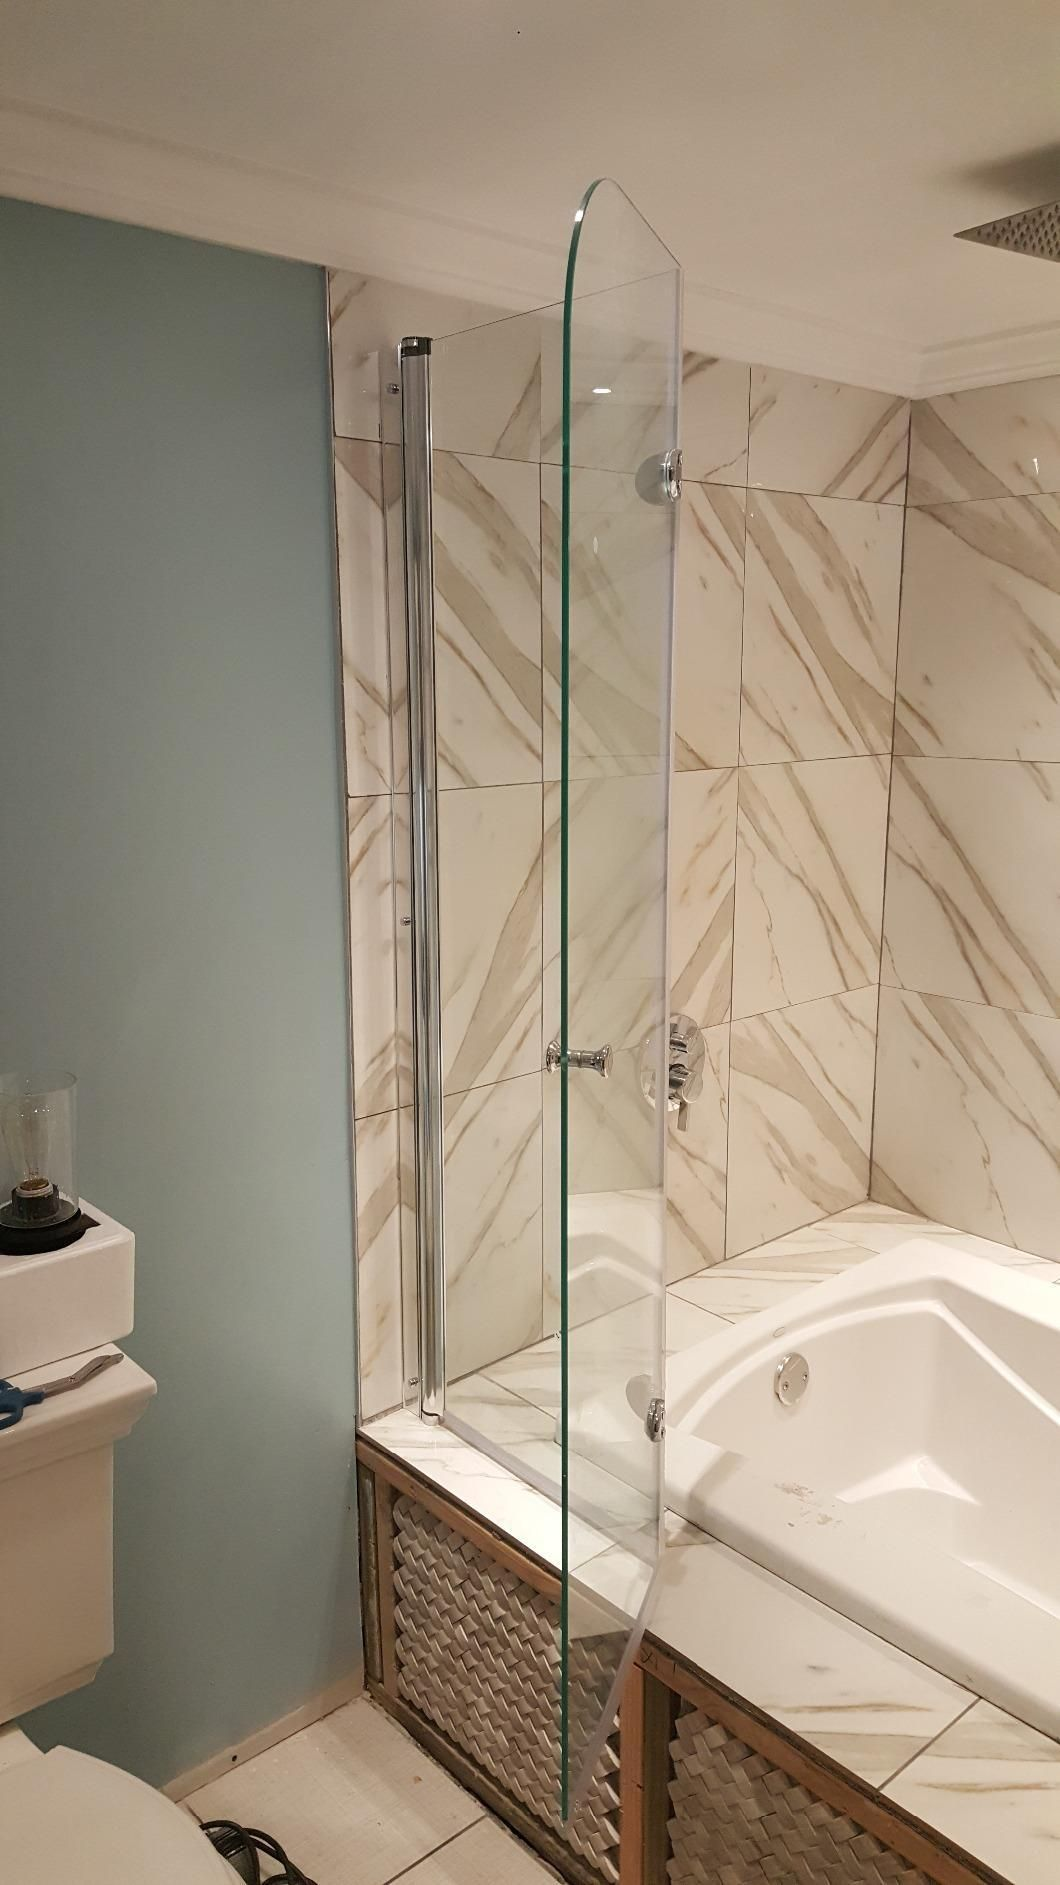 Unique Folding 1 4 Inch Thick Glass Frameless Tub Door With Trackless System Aqua Fold Boasts An Out Of Plu Shower Doors Frameless Shower Doors Bathtub Doors